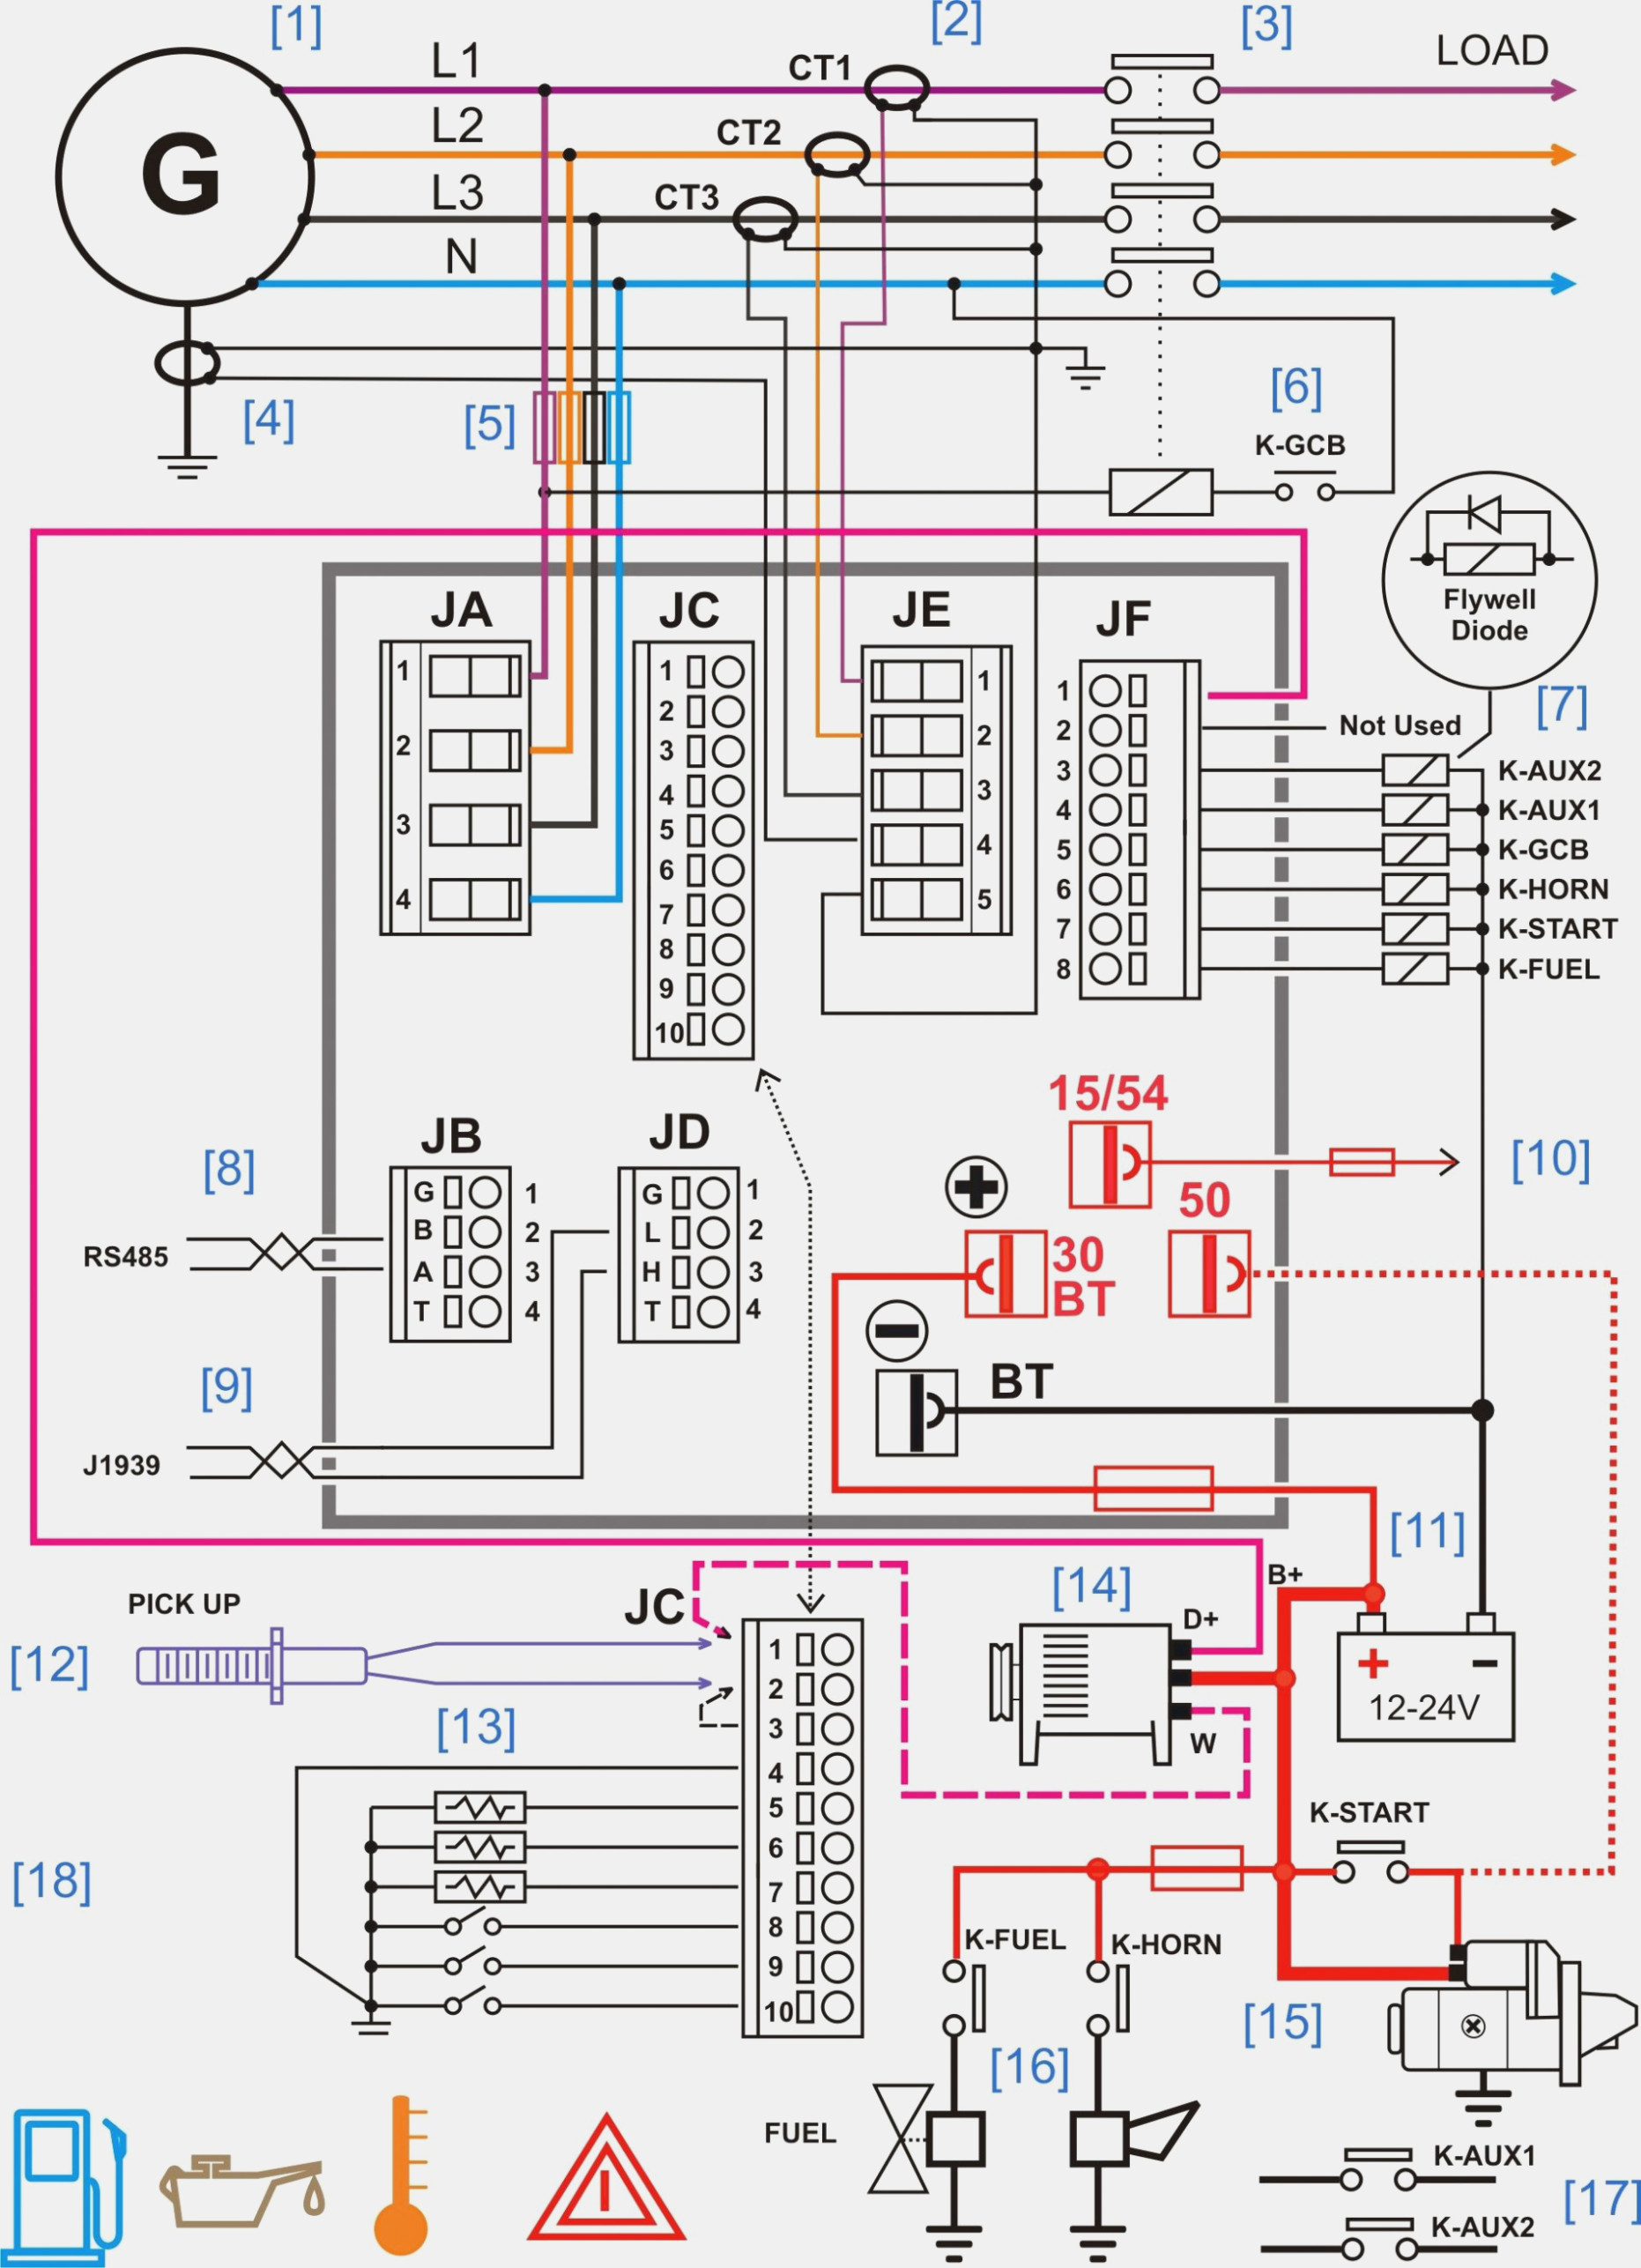 Siren Circuit Diagram On Fire Alarm Horn Strobe Wiring Diagram - Fire Alarm Horn Strobe Wiring Diagram